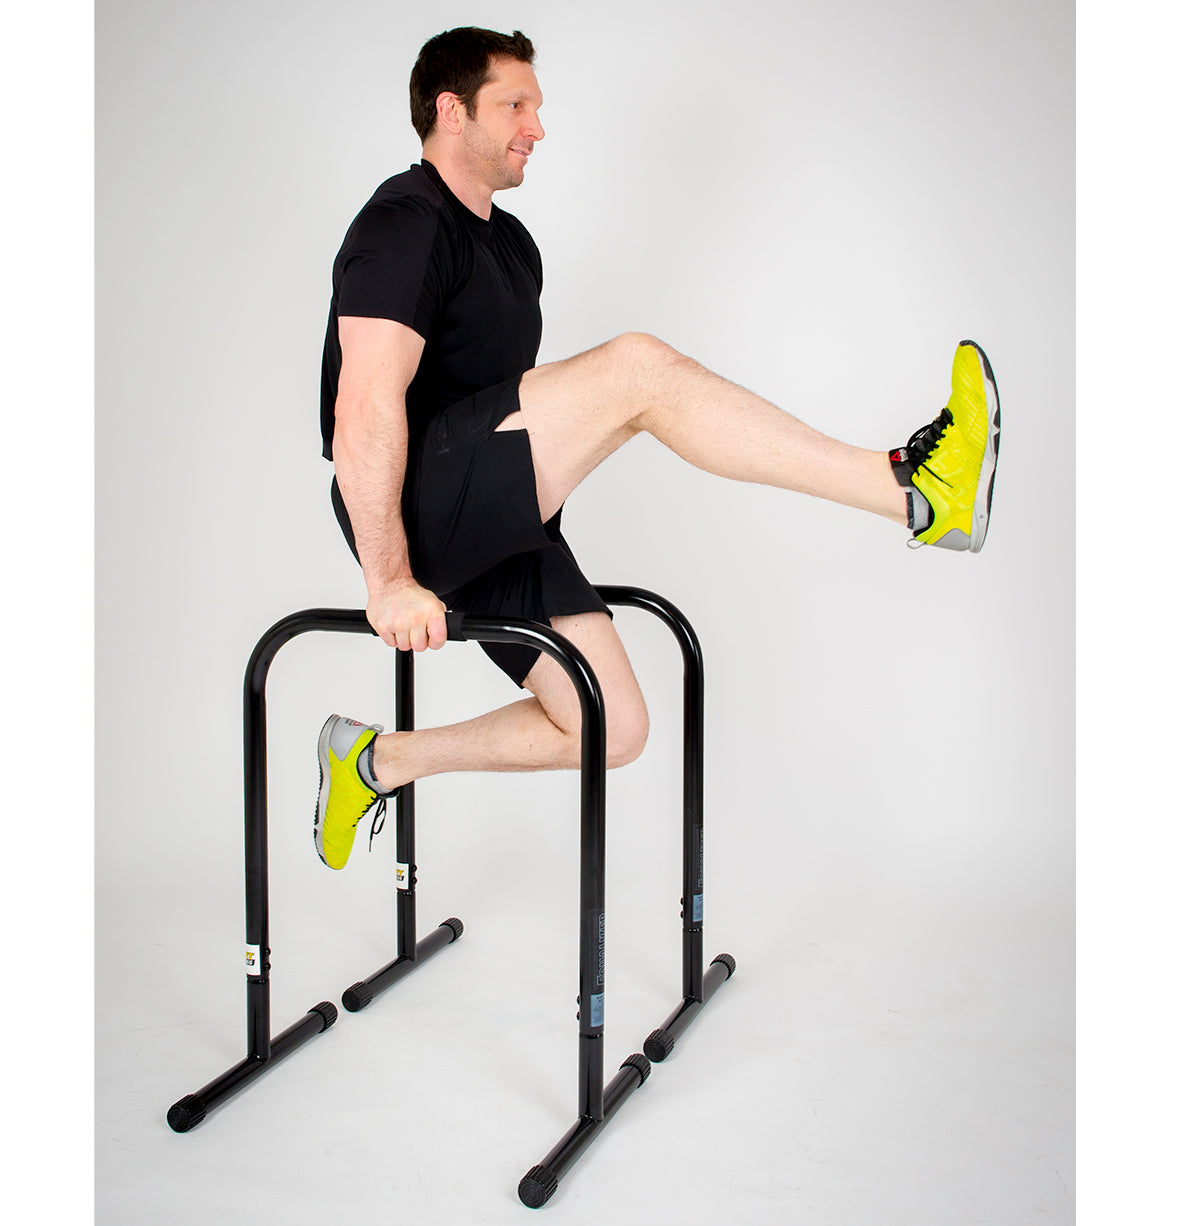 Lebert EQualizer Total Body Strengthener - Black XL